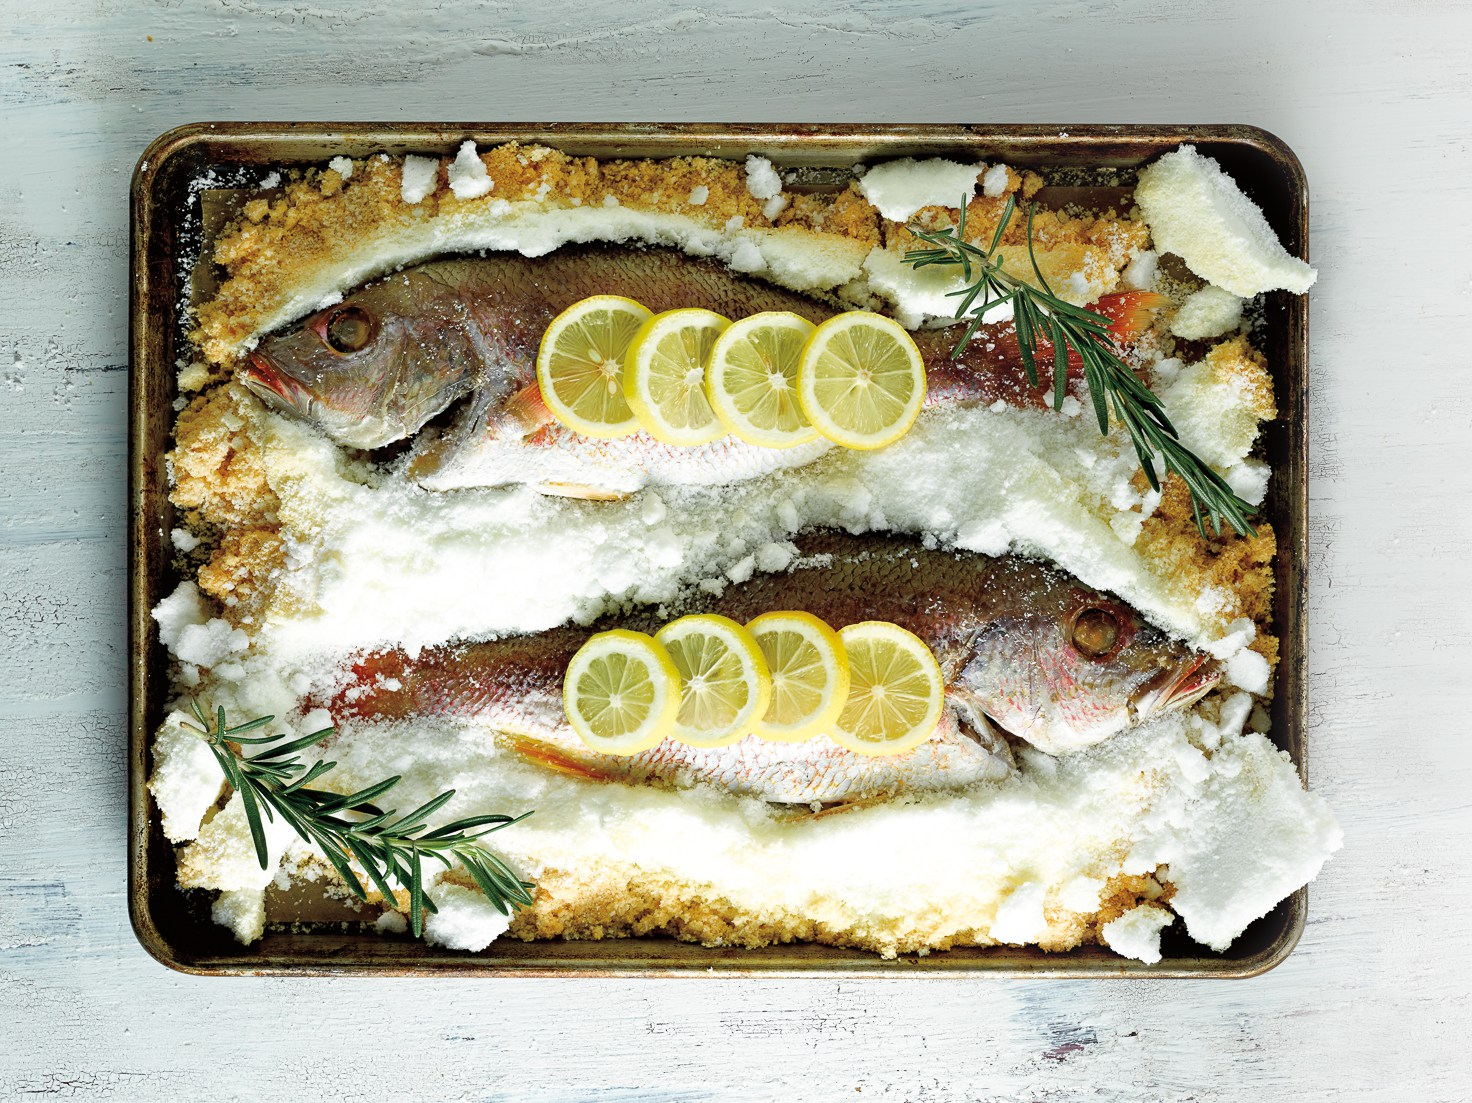 Salt crusted red snapper for a recipe in The Insatiable Lens Food and Photography Magazine.